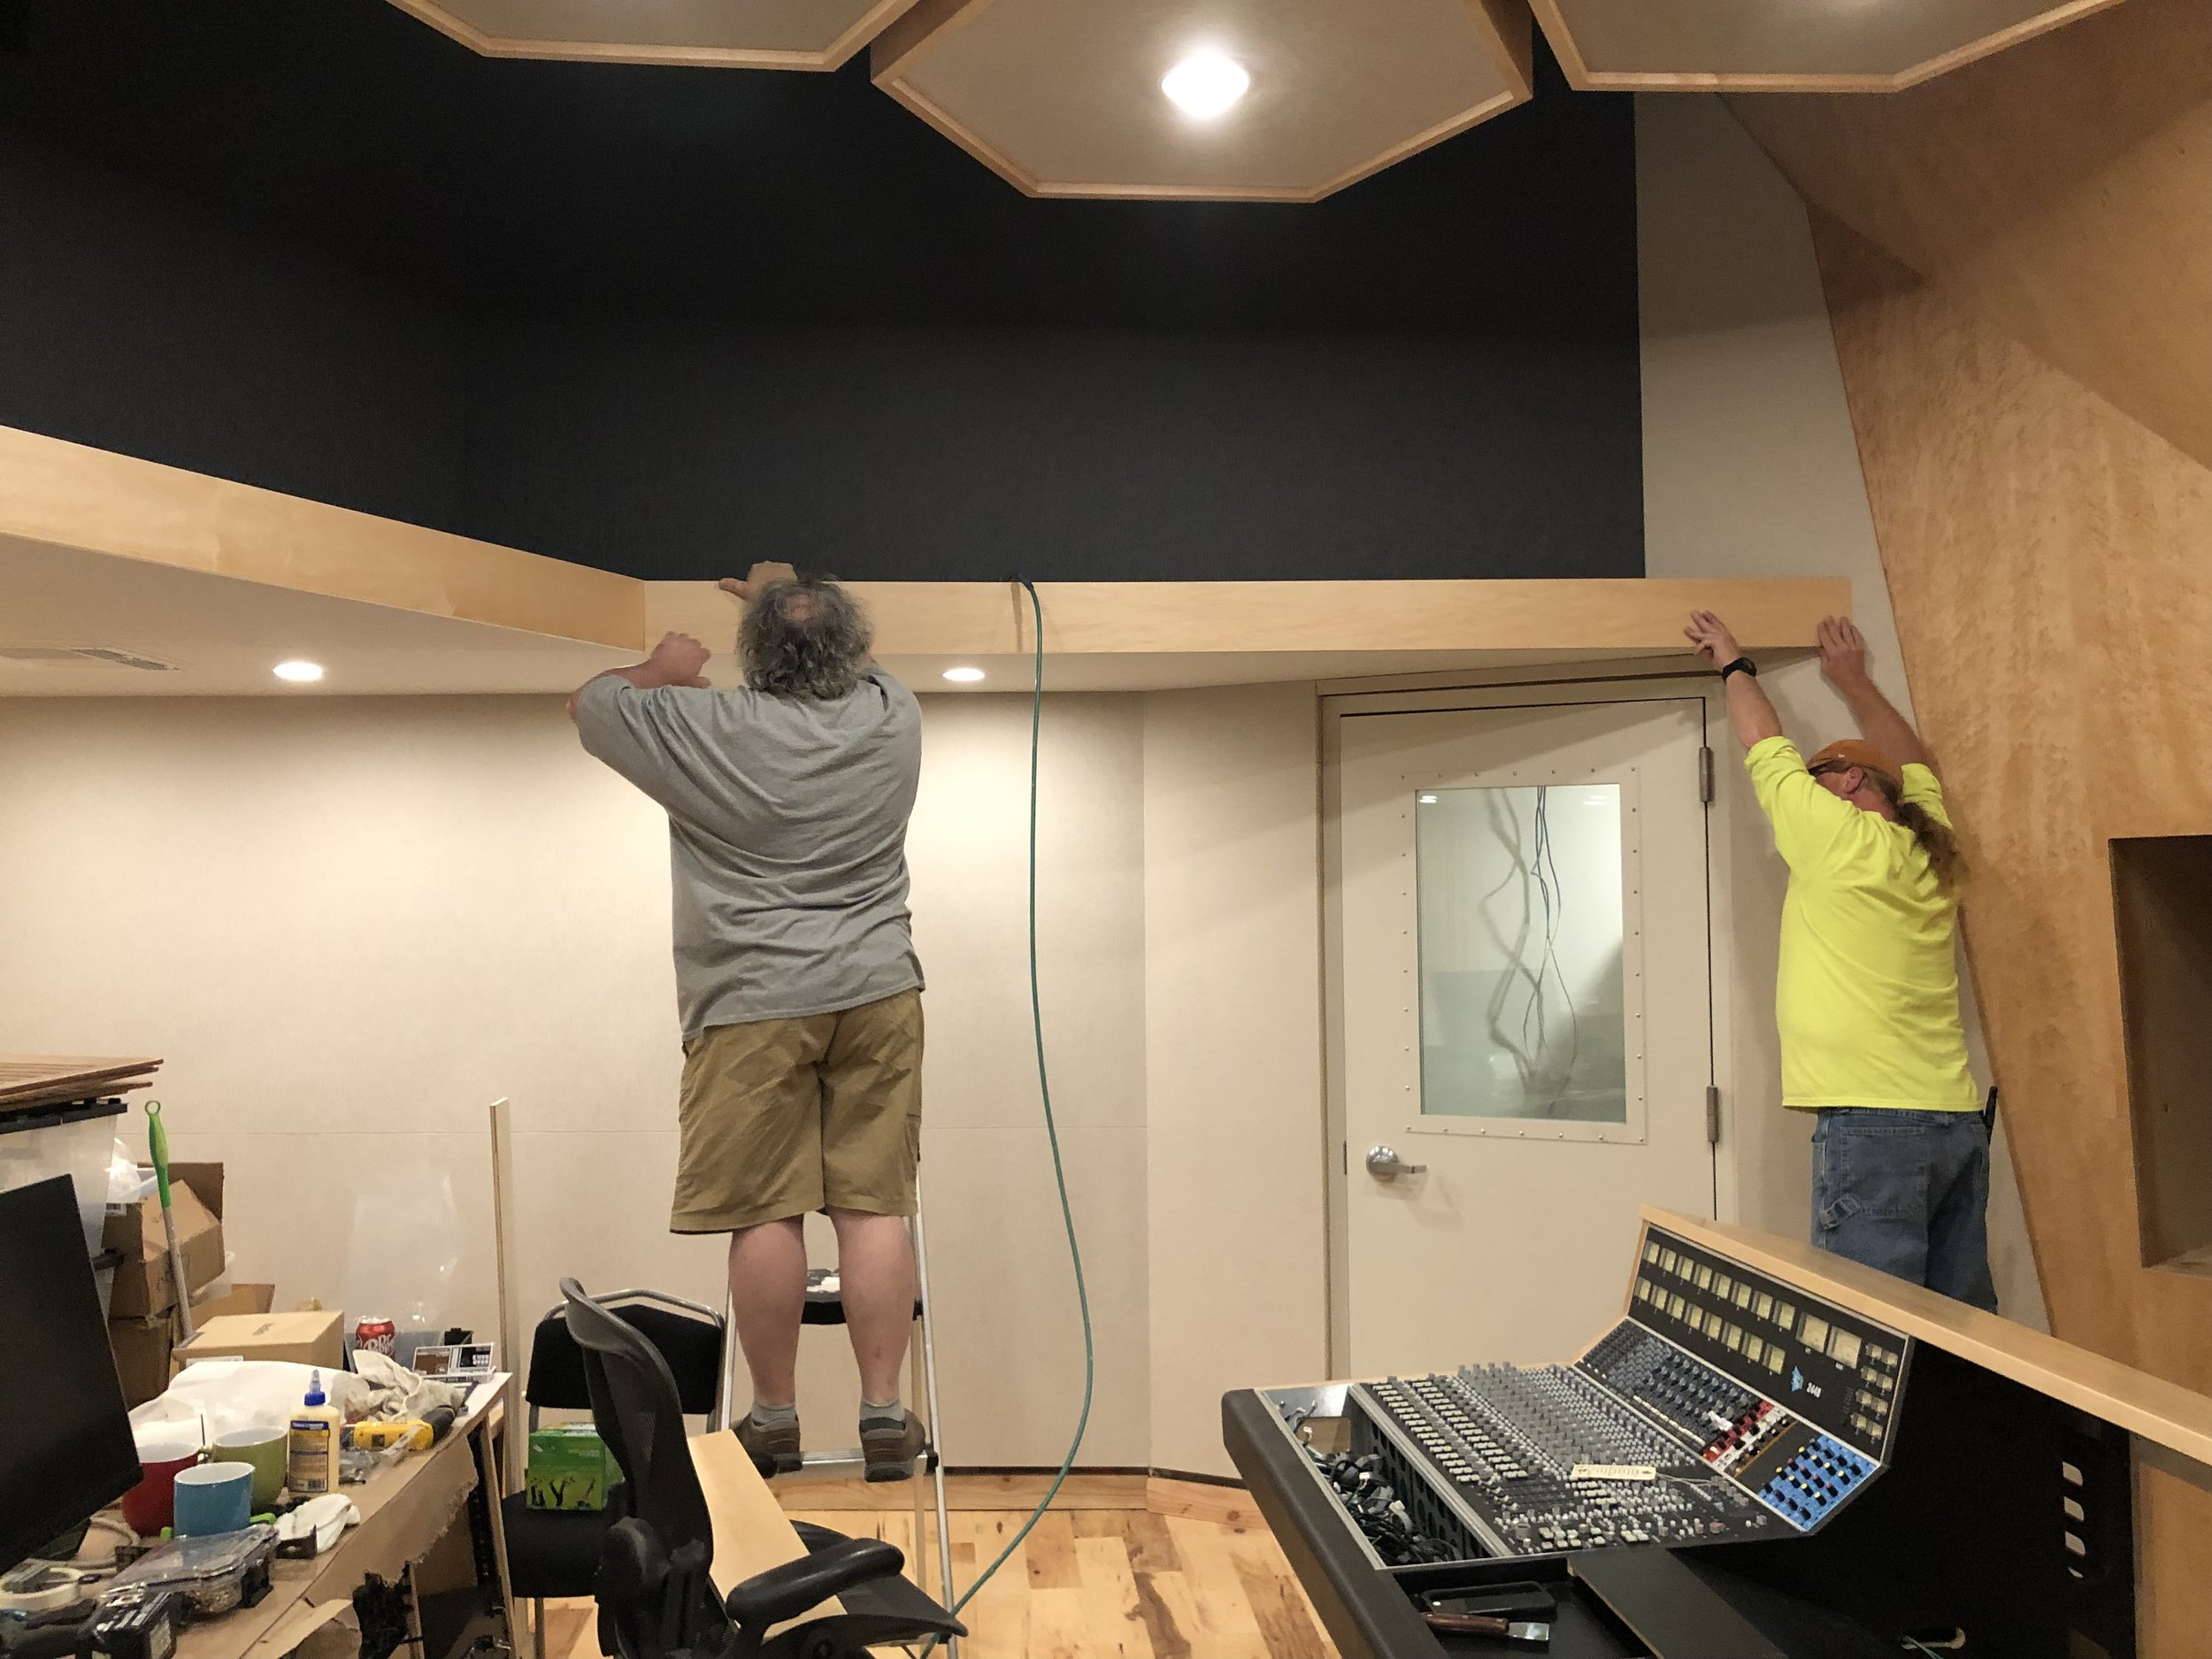 The crew from Brett Acoustics left, driving one of the trucks back and taking our old API 1608 with them. One week later Tony and his brother Bryan flew back out to help finish up a few odds and ends like the soffit facia they are installing here.